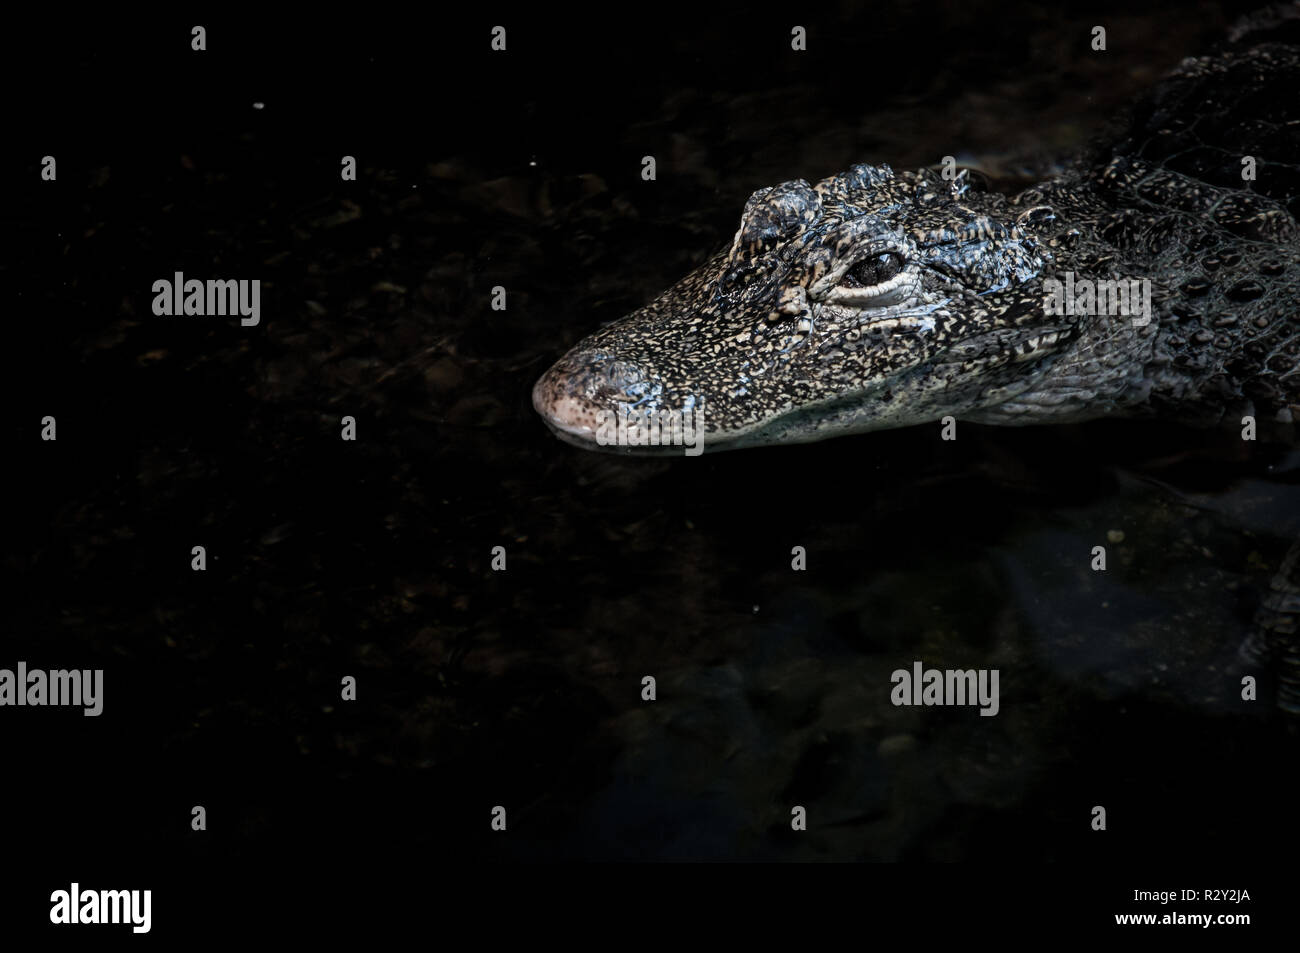 Crocodile close up floating on water surface - Stock Image